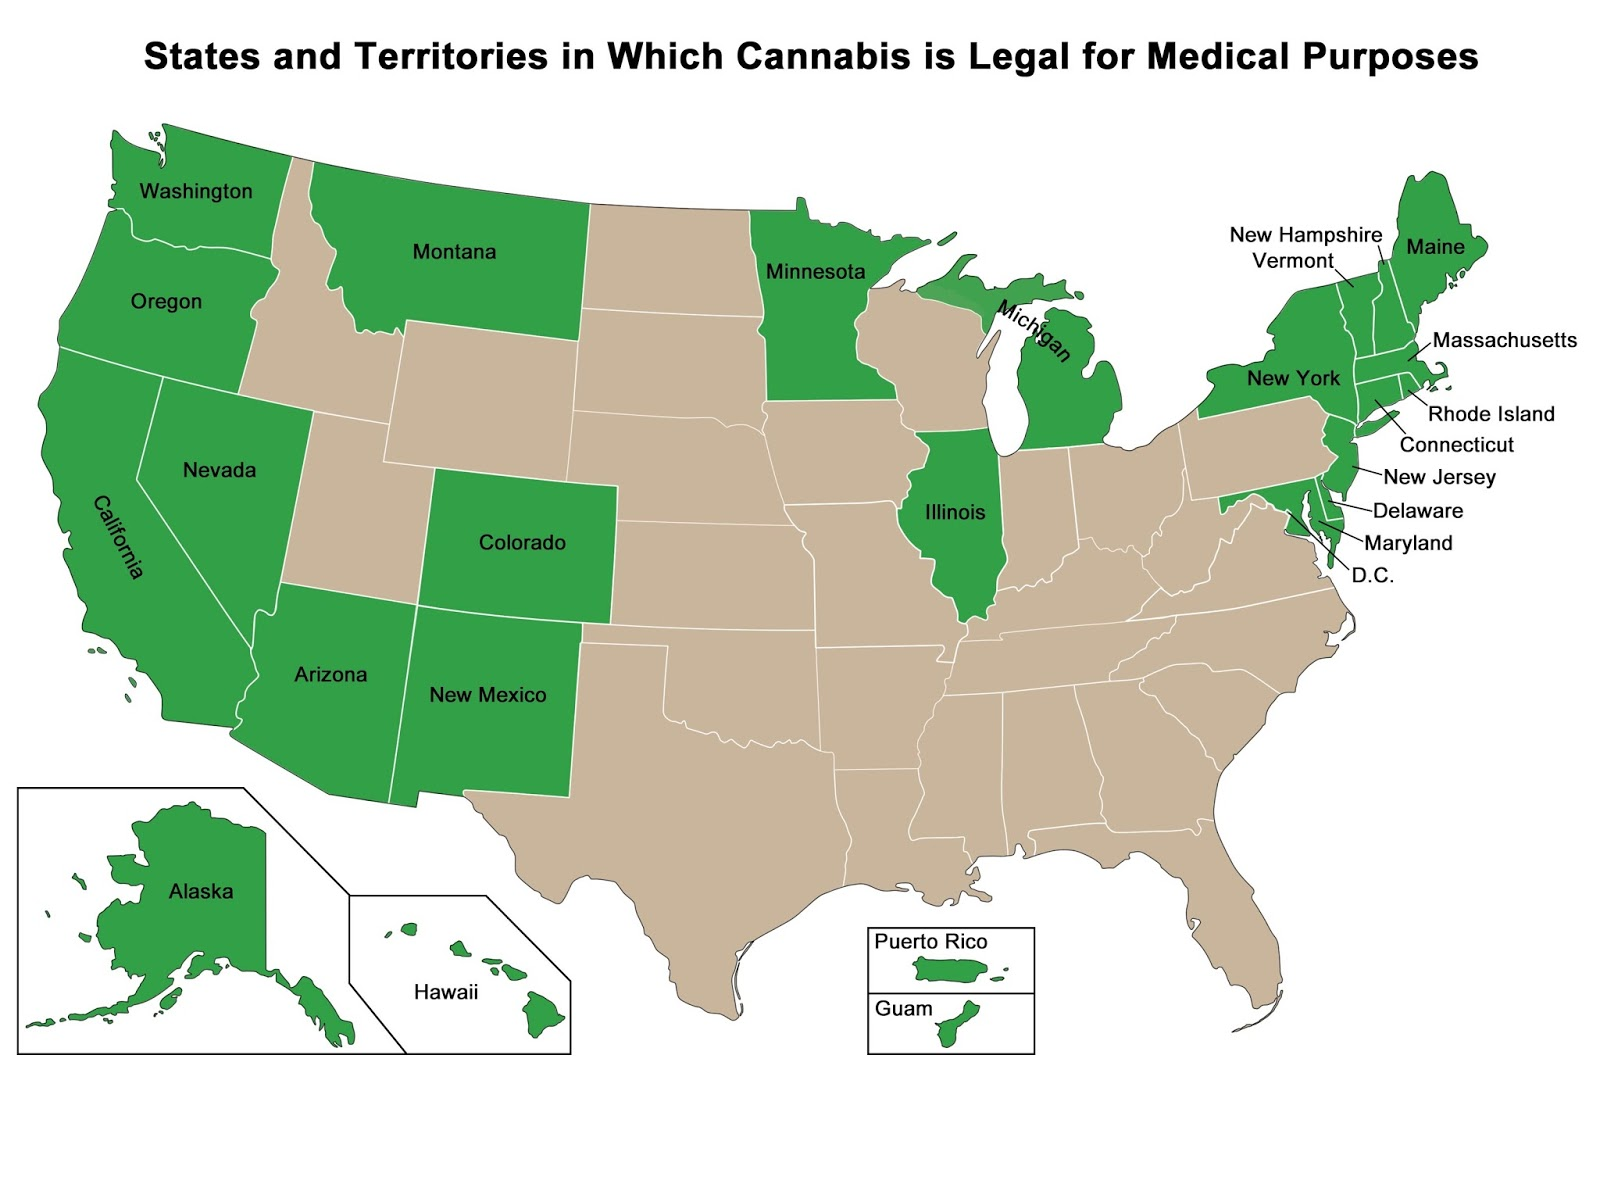 marijuana for medicinal purposes should be legalized in the united states of america Fifty-one percent say they think the use of marijuana should be made legal americans support the use of marijuana for medicinal purposes in overwhelming numbers who should decide: federal gov't or states.